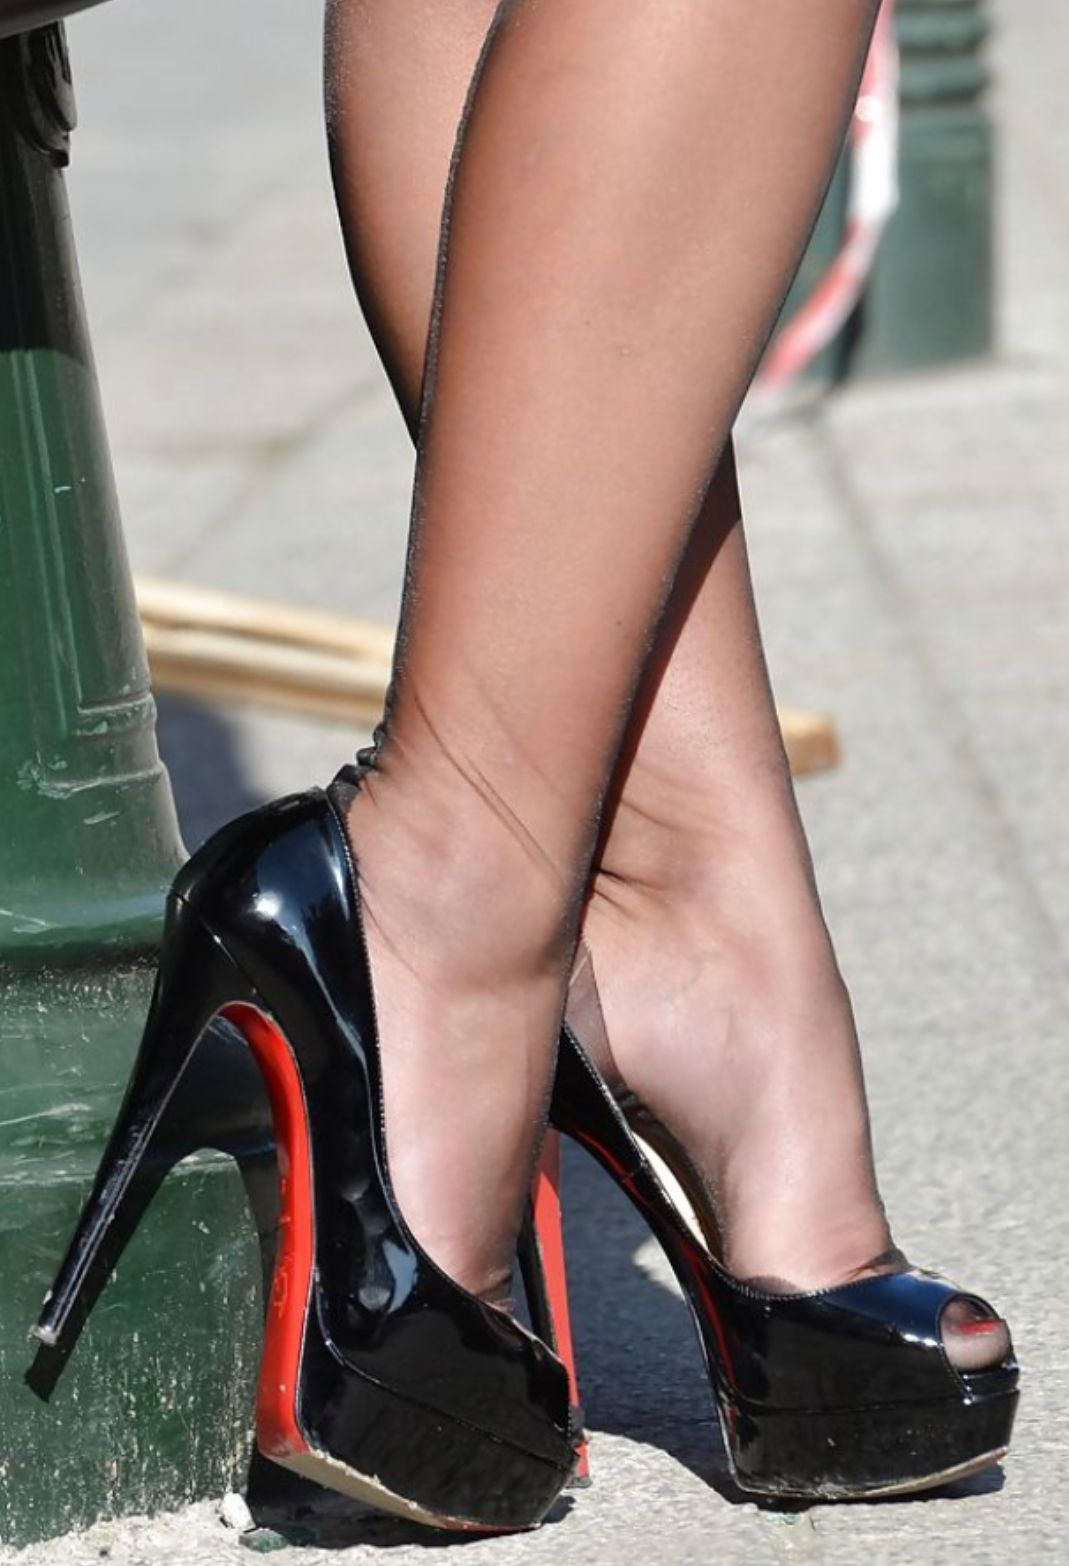 Pin on Hochhackige schuhe